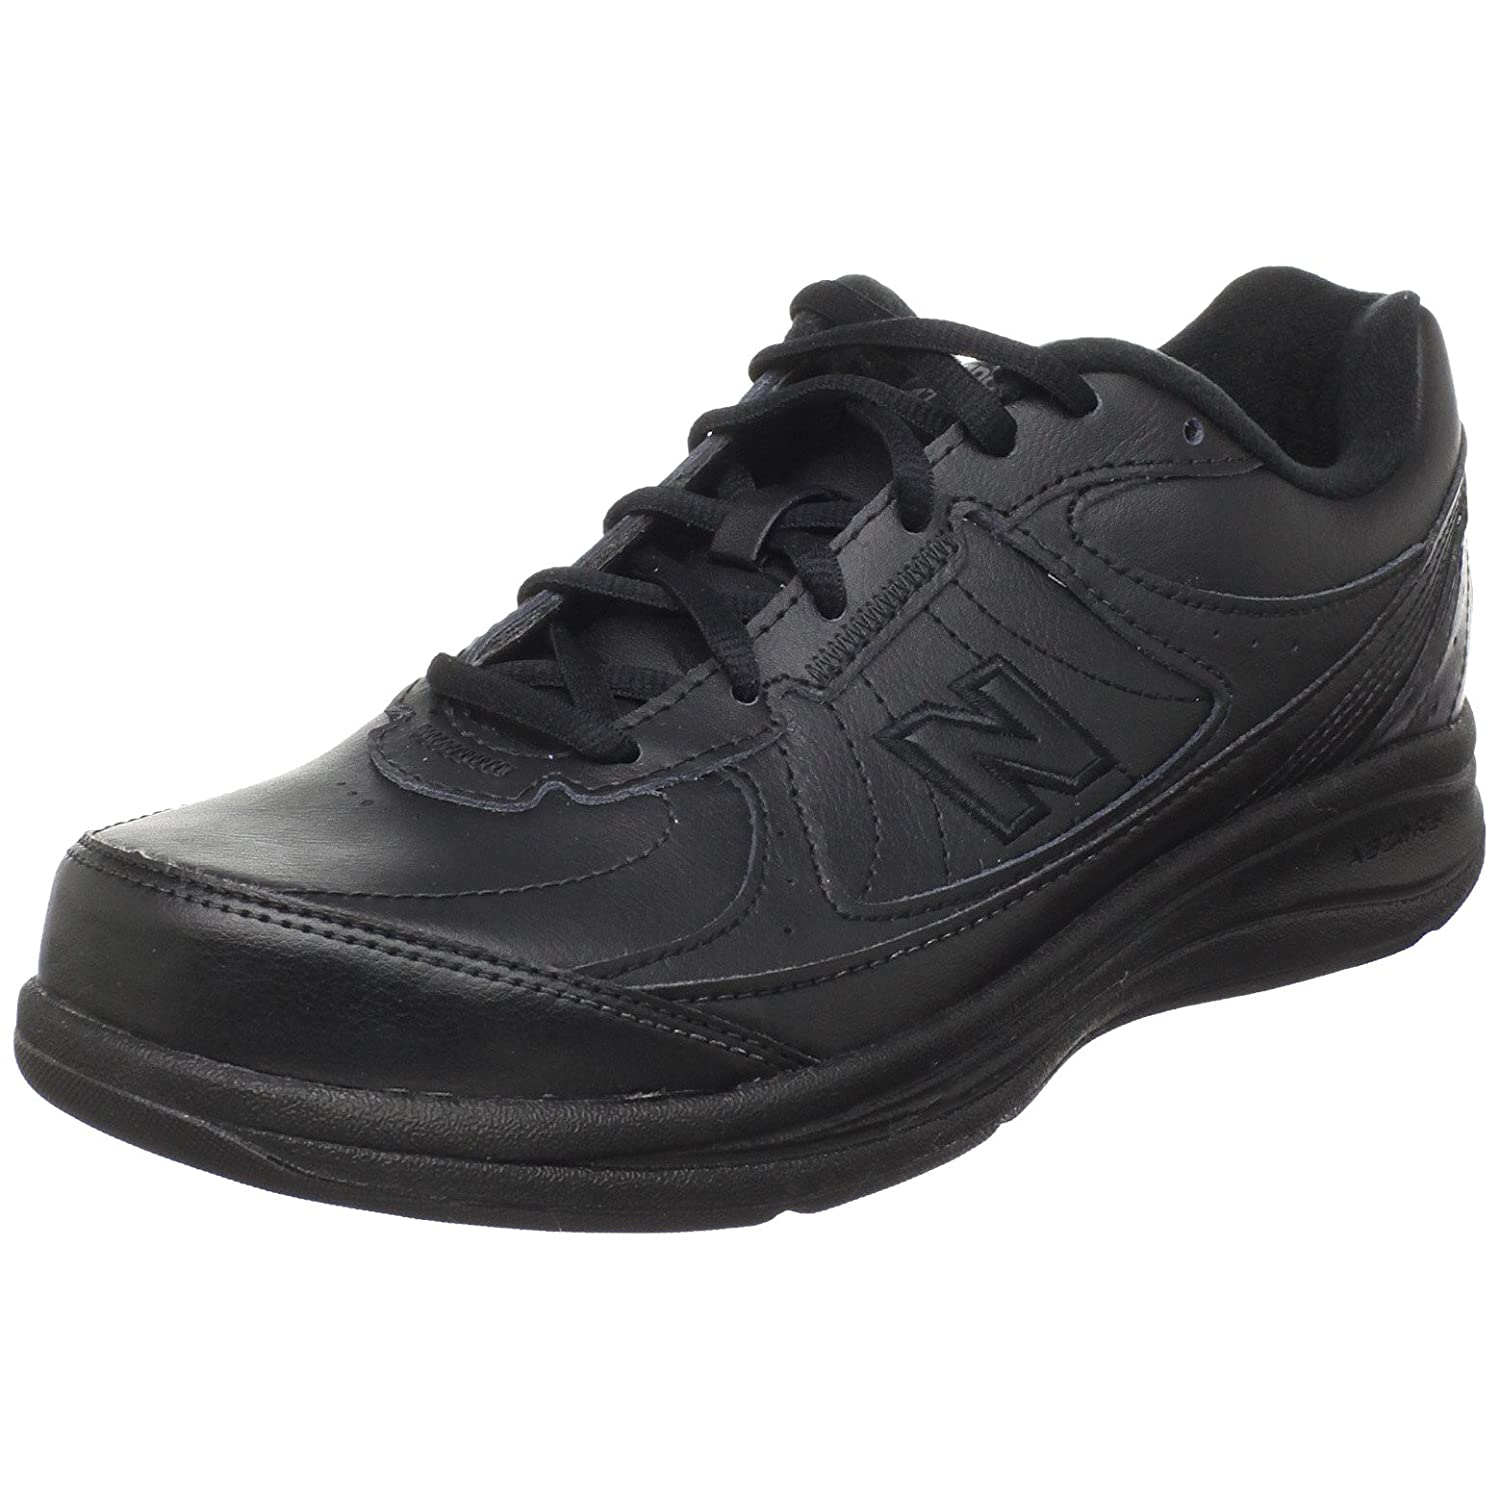 Amazon Best Sellers: Best Men's Walking Shoes